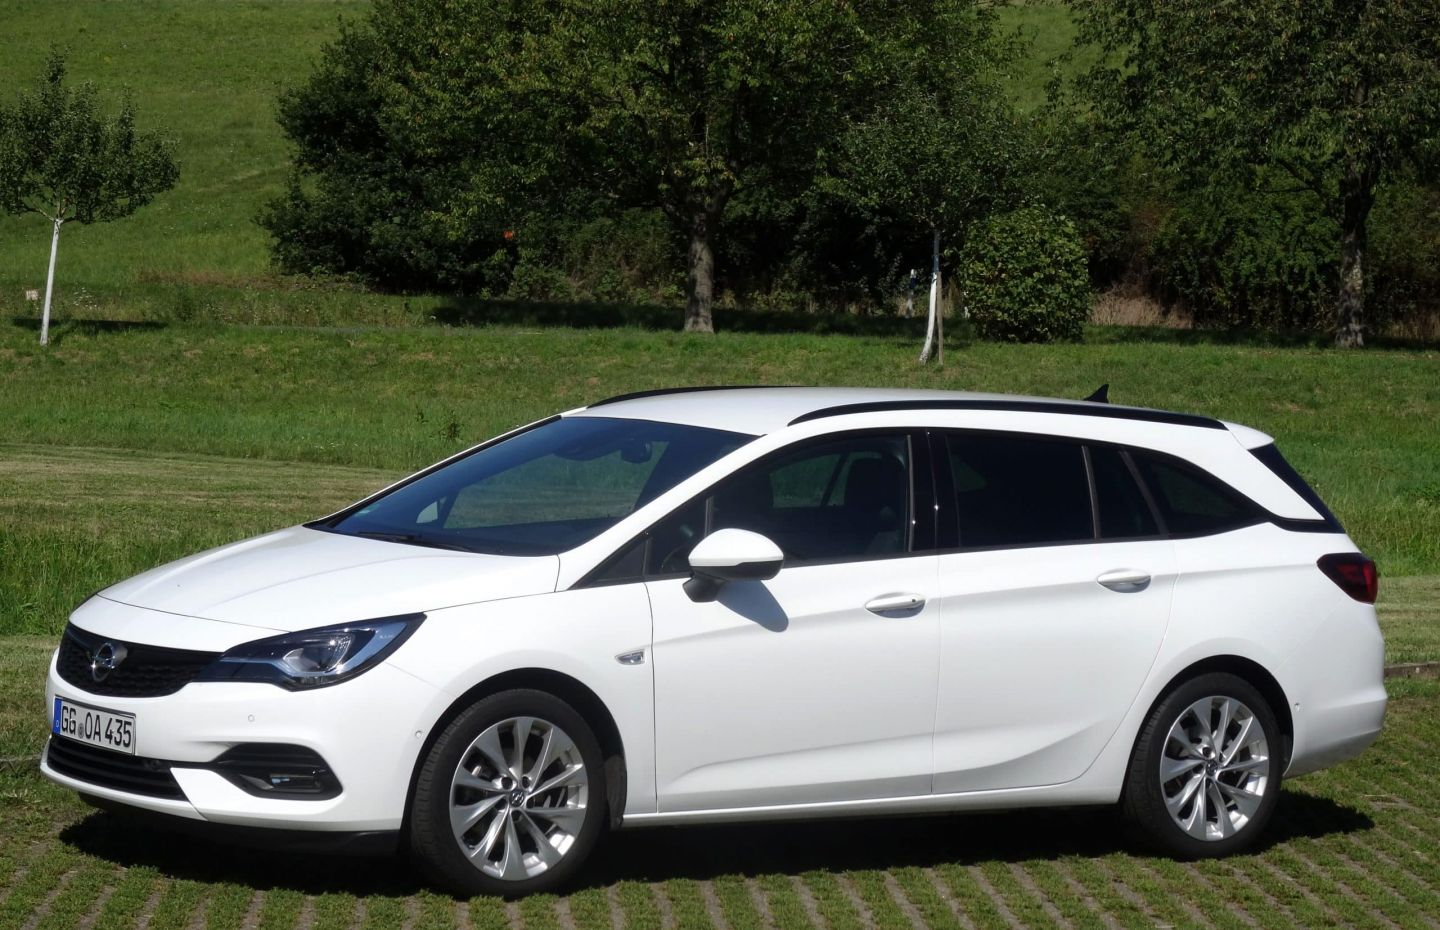 Auto Opel Astra Sports Tourer